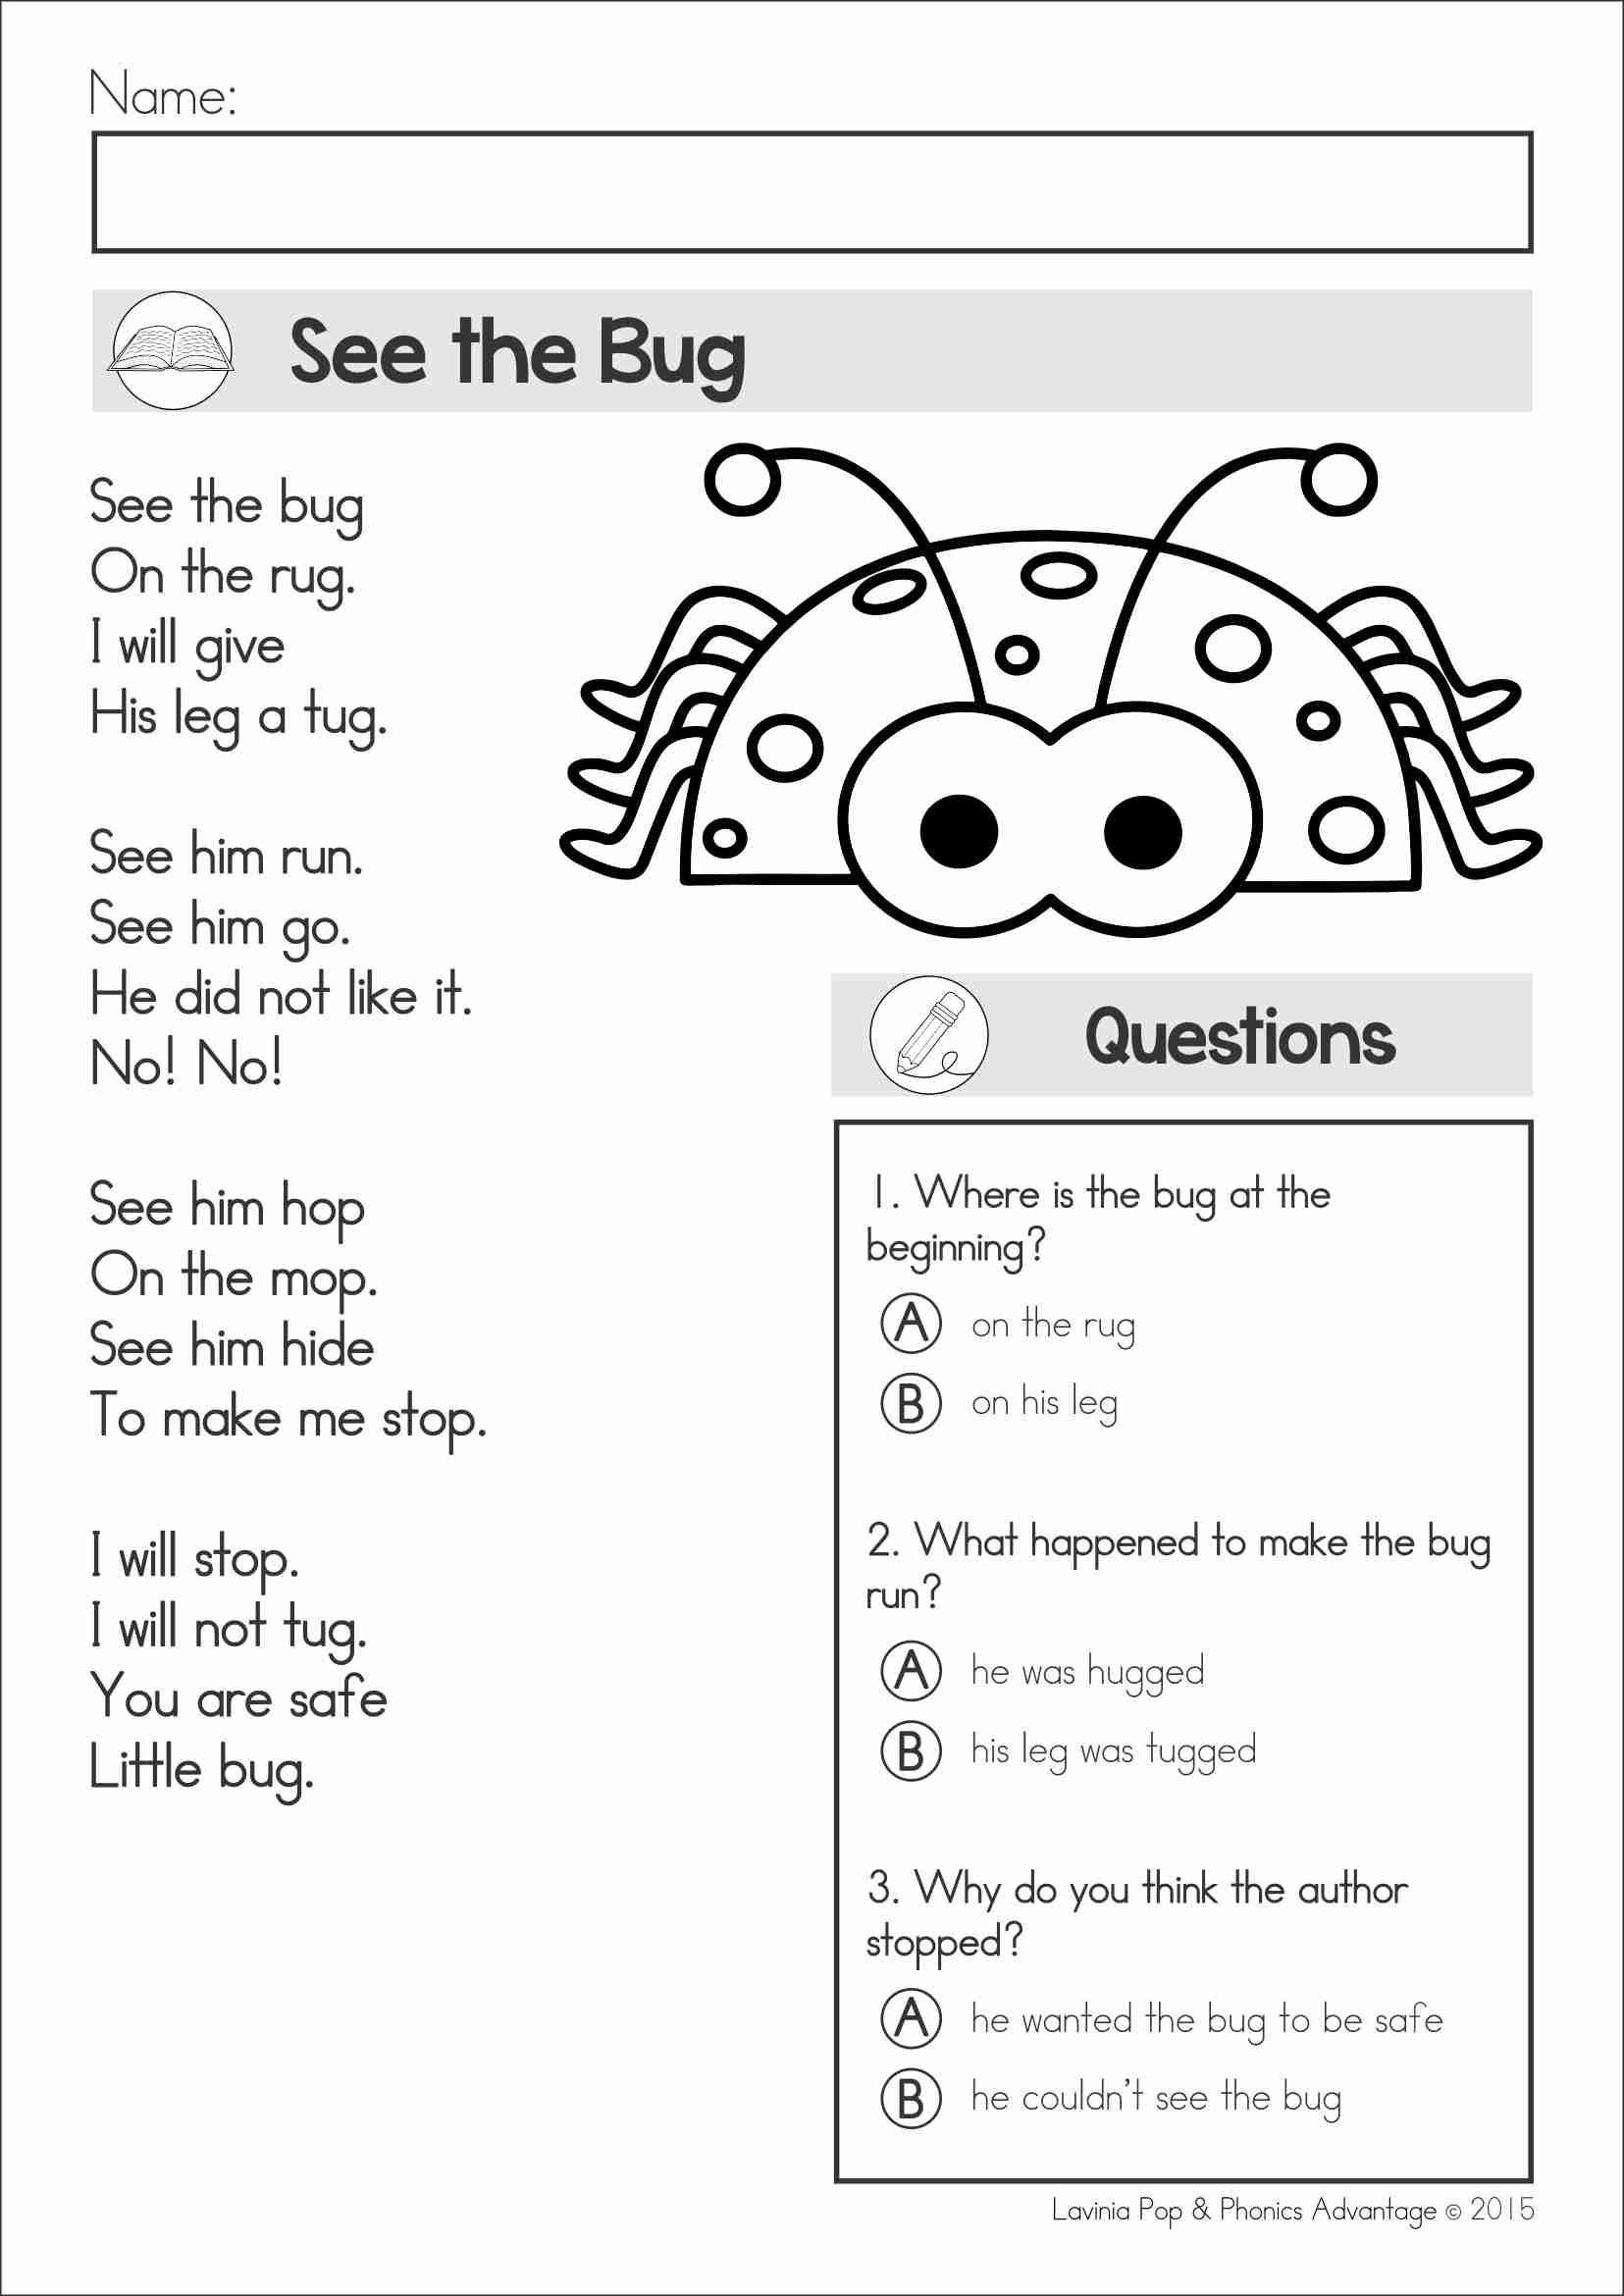 8th Grade Poetry Worksheet Poetry Worksheet 3rd Grade In